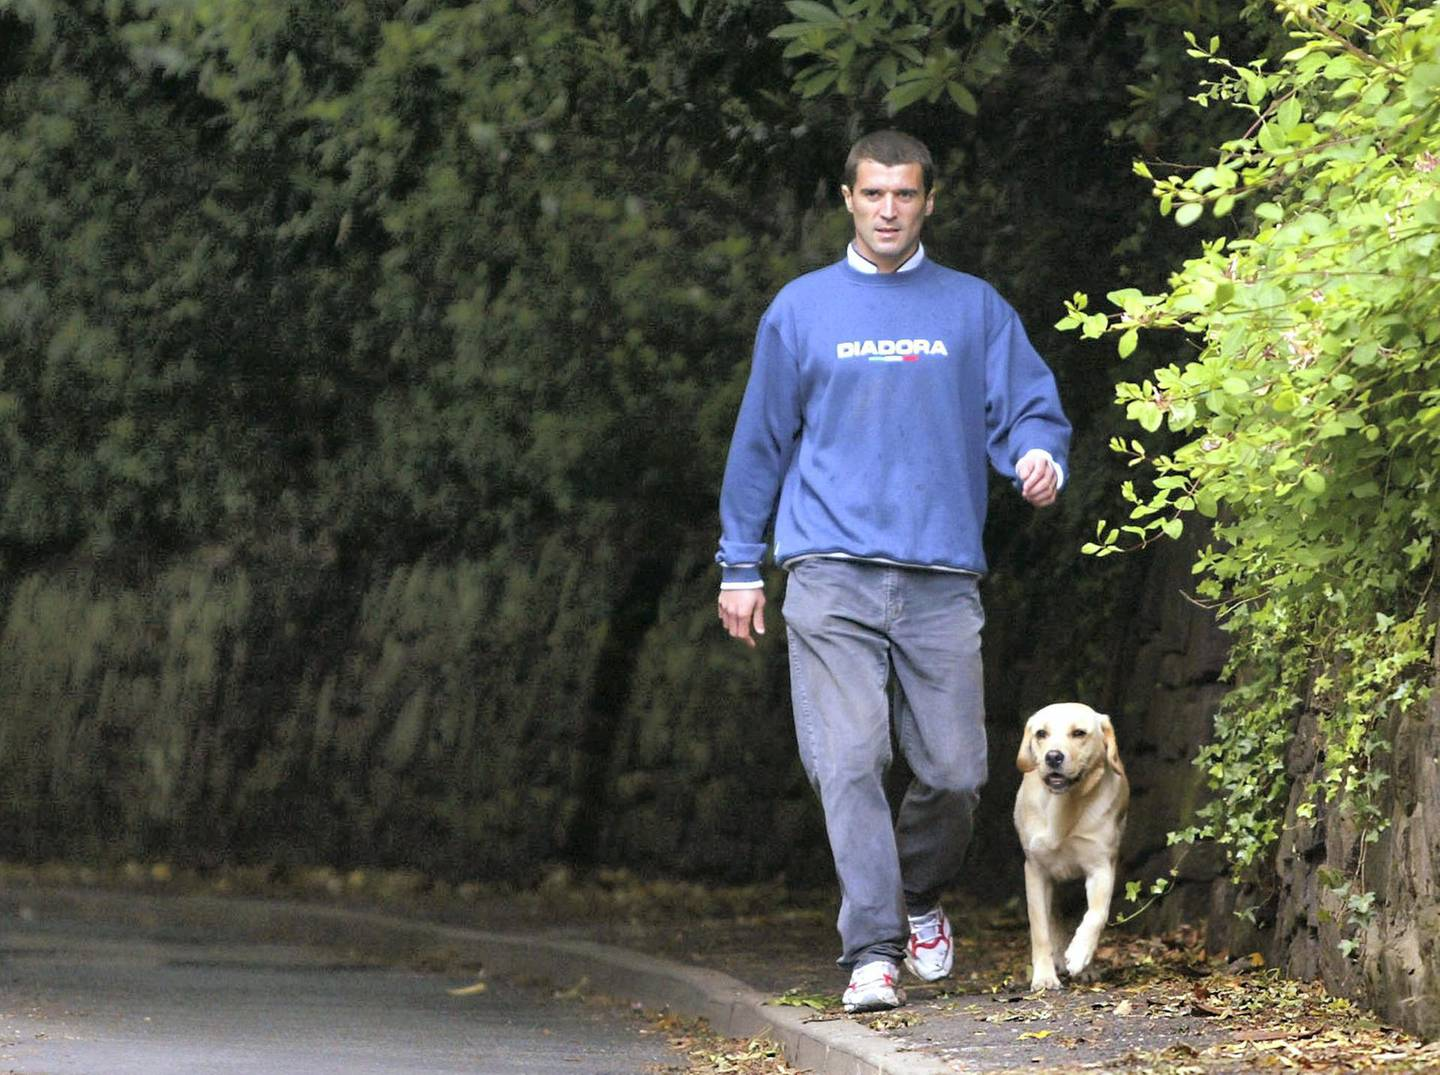 Roy Keane, former captain of Ireland's World Cup soccer team arrives back at Cheshire home after taking his dog for a walk, May 28, 2002. Keane's hopes of a World Cup reprieve were firmly dashed earlier on Tuesday when the remaining 22 Irish players released a statement saying they were better off without him. REUTERS/Ian Hodgson  IH/PS - RP3DRHZOQKAA